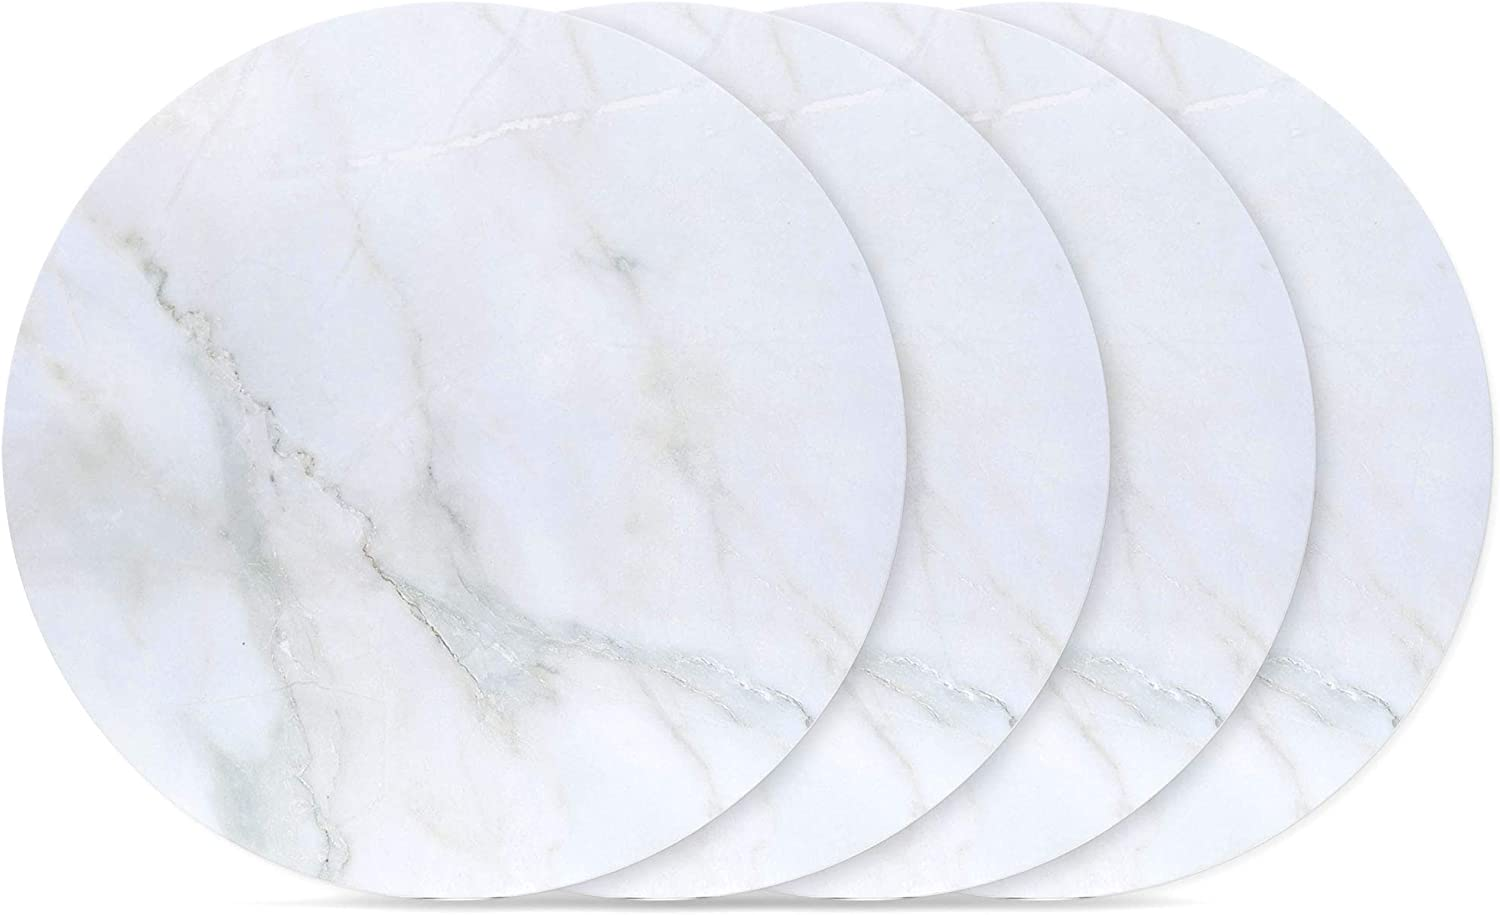 Lacupella Cake Boards Marble 10 inch Pack B Directly managed store Diameter Sale item of 4 Round